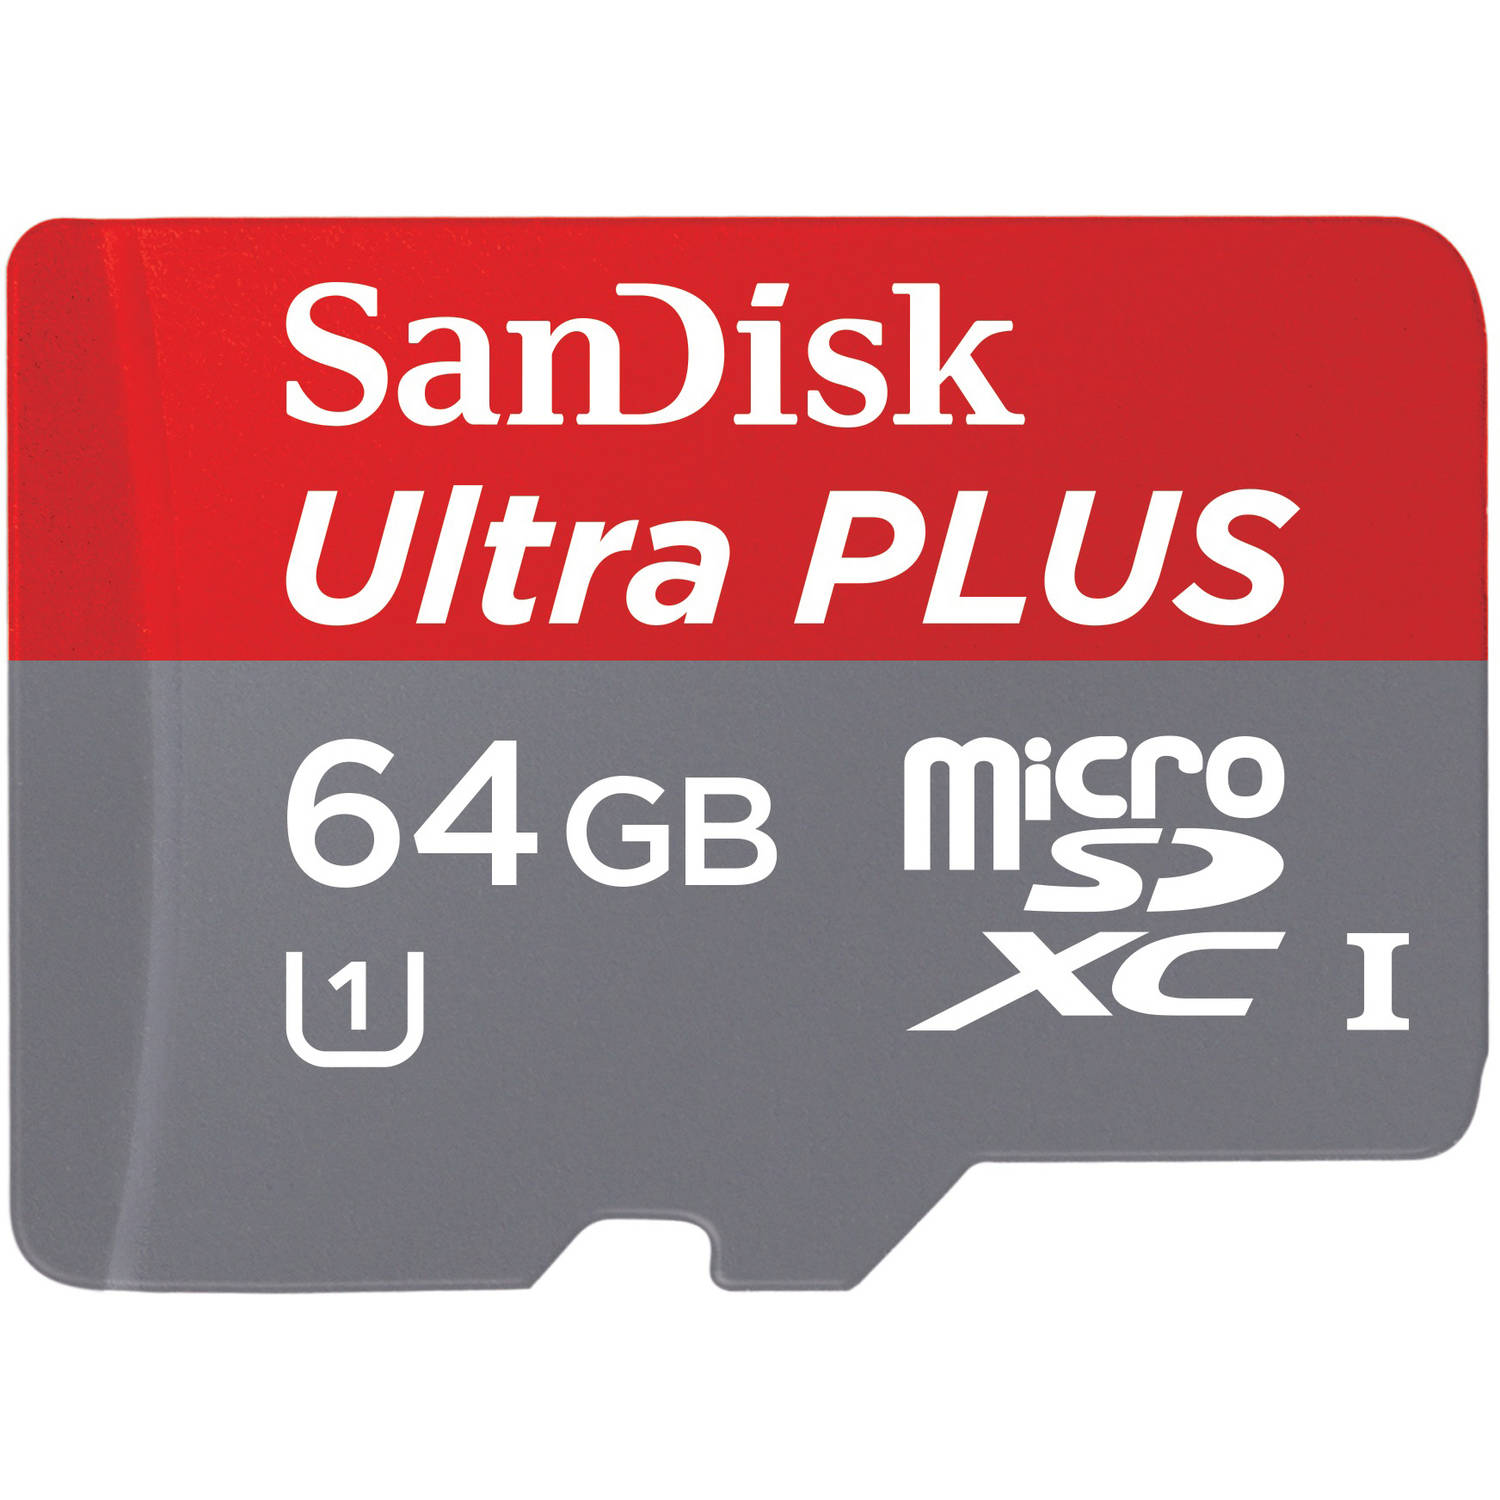 SanDisk Ultra PLUS 64GB microSD Card, Imaging, Class 10